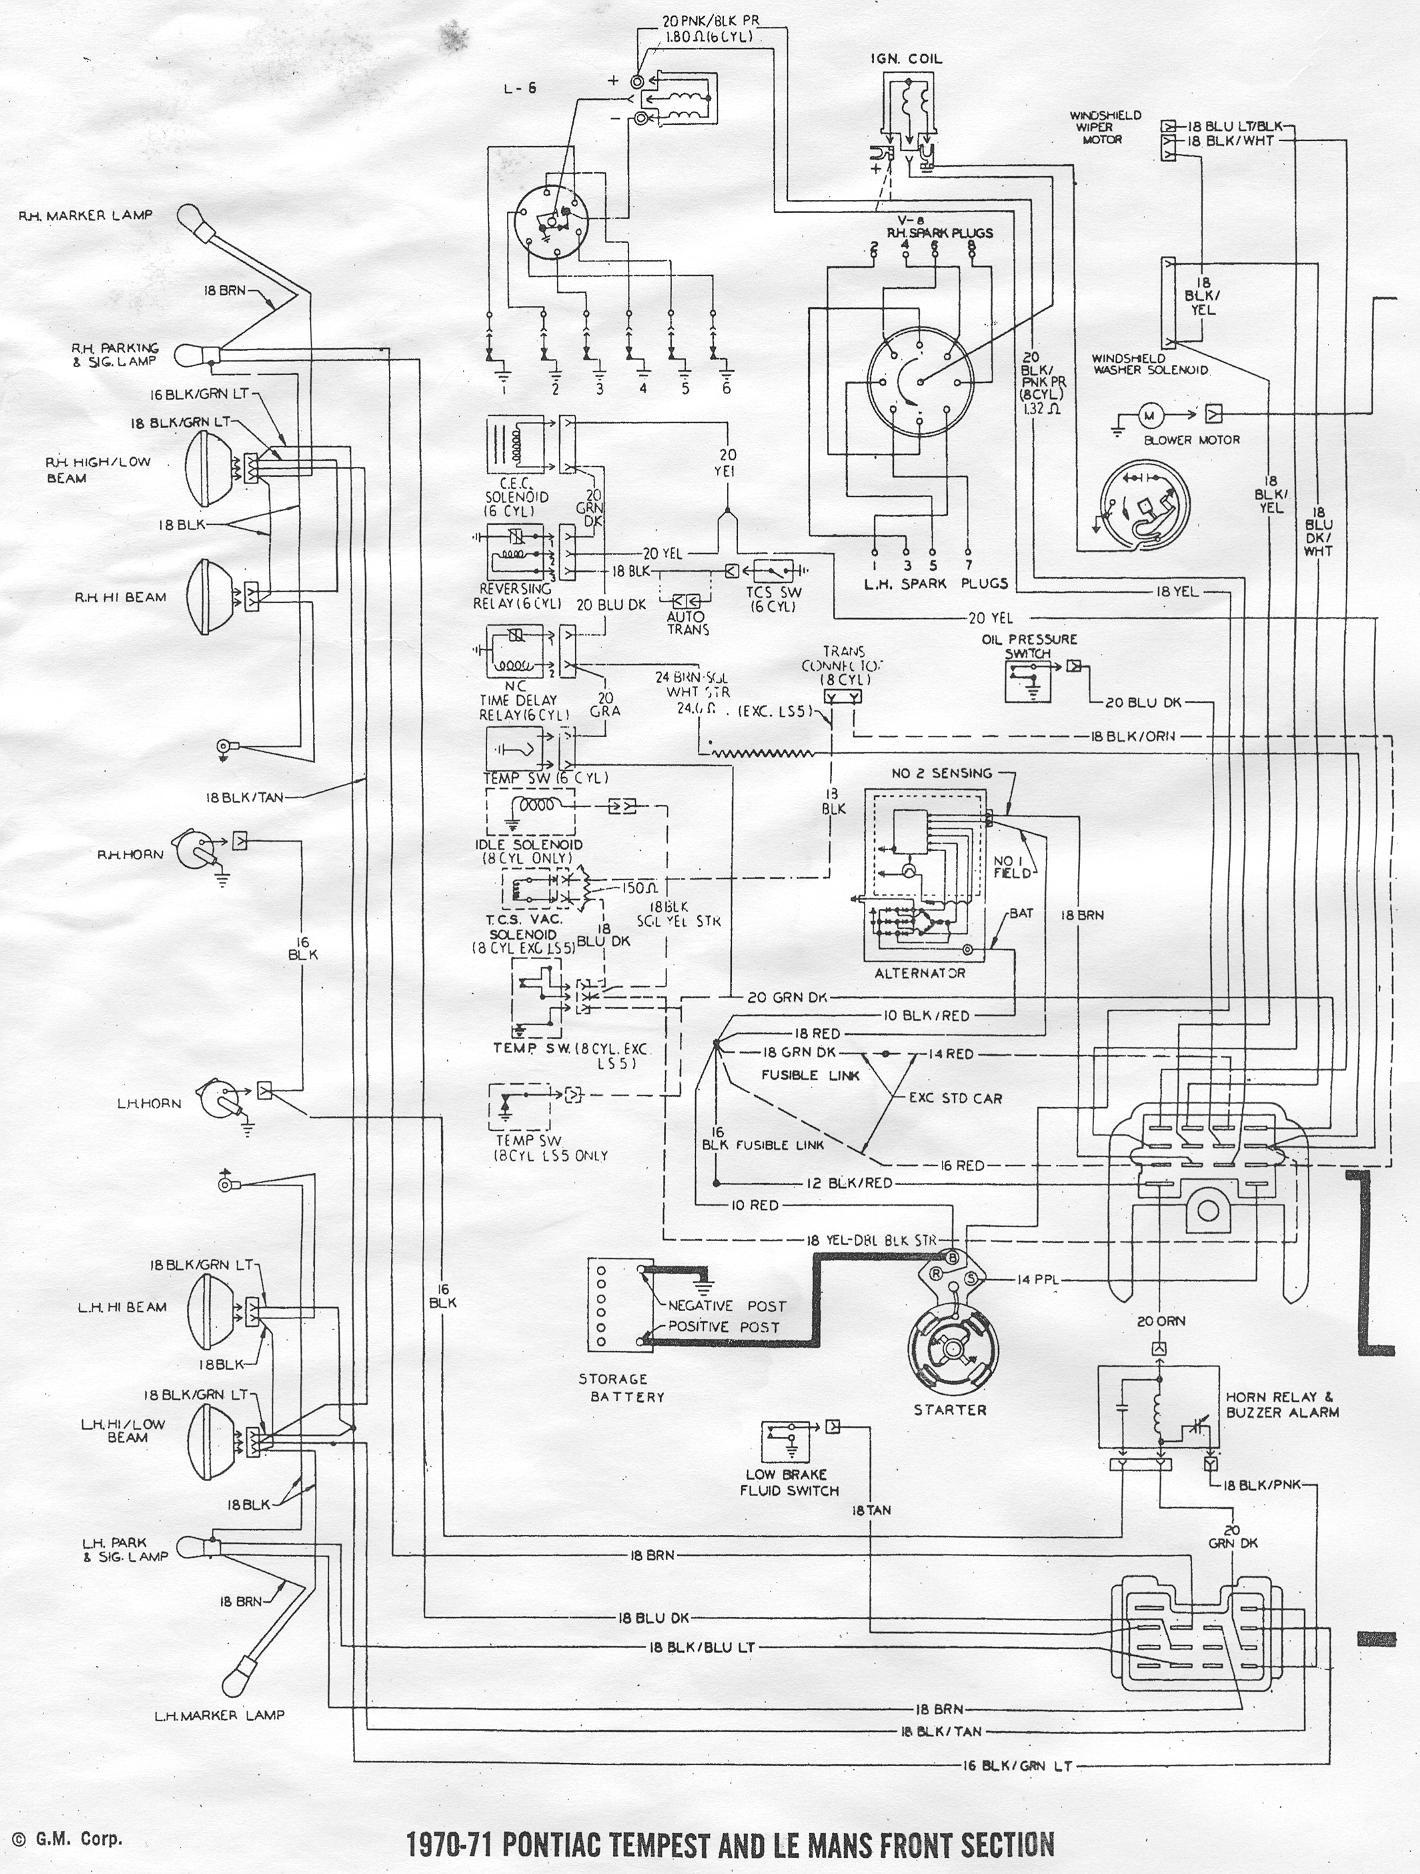 chevelle horn relay wiring diagram wiring diagrams 1968 chevelle horn relay diagram jodebal com